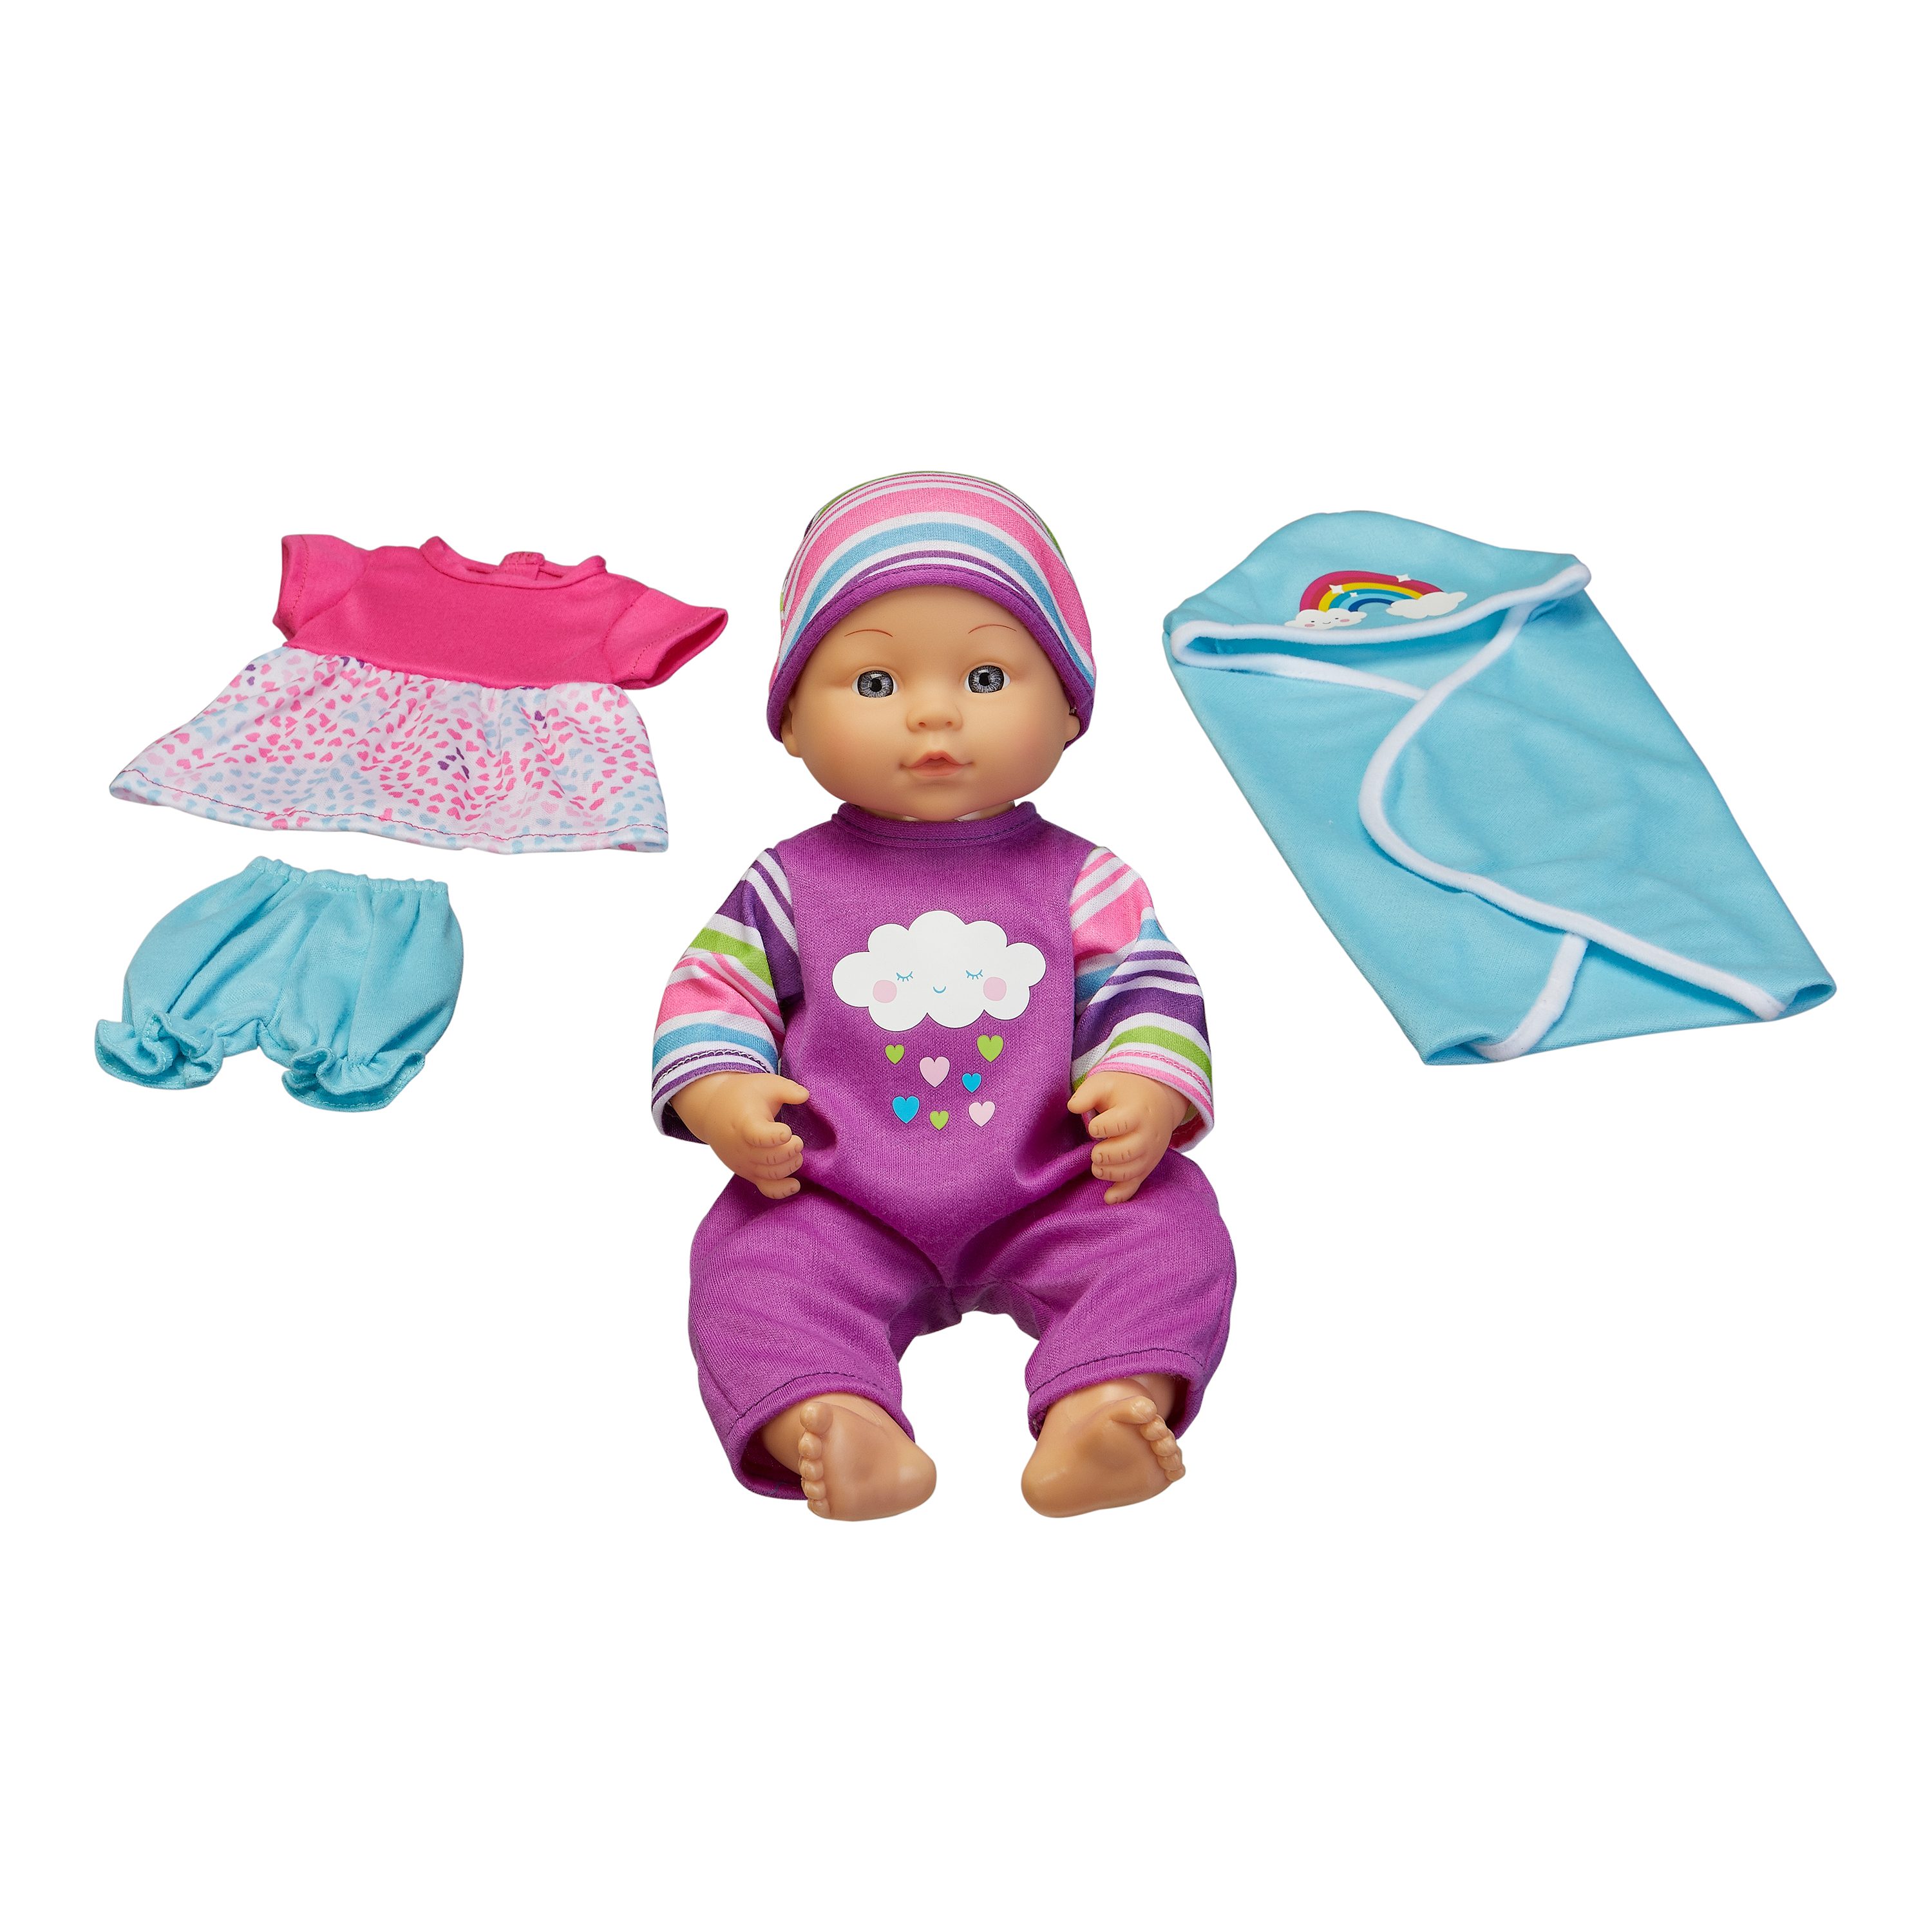 "My Sweet Love 12.5"" Baby Doll and Outfits Play Set, Rainbow, 6 Pieces"